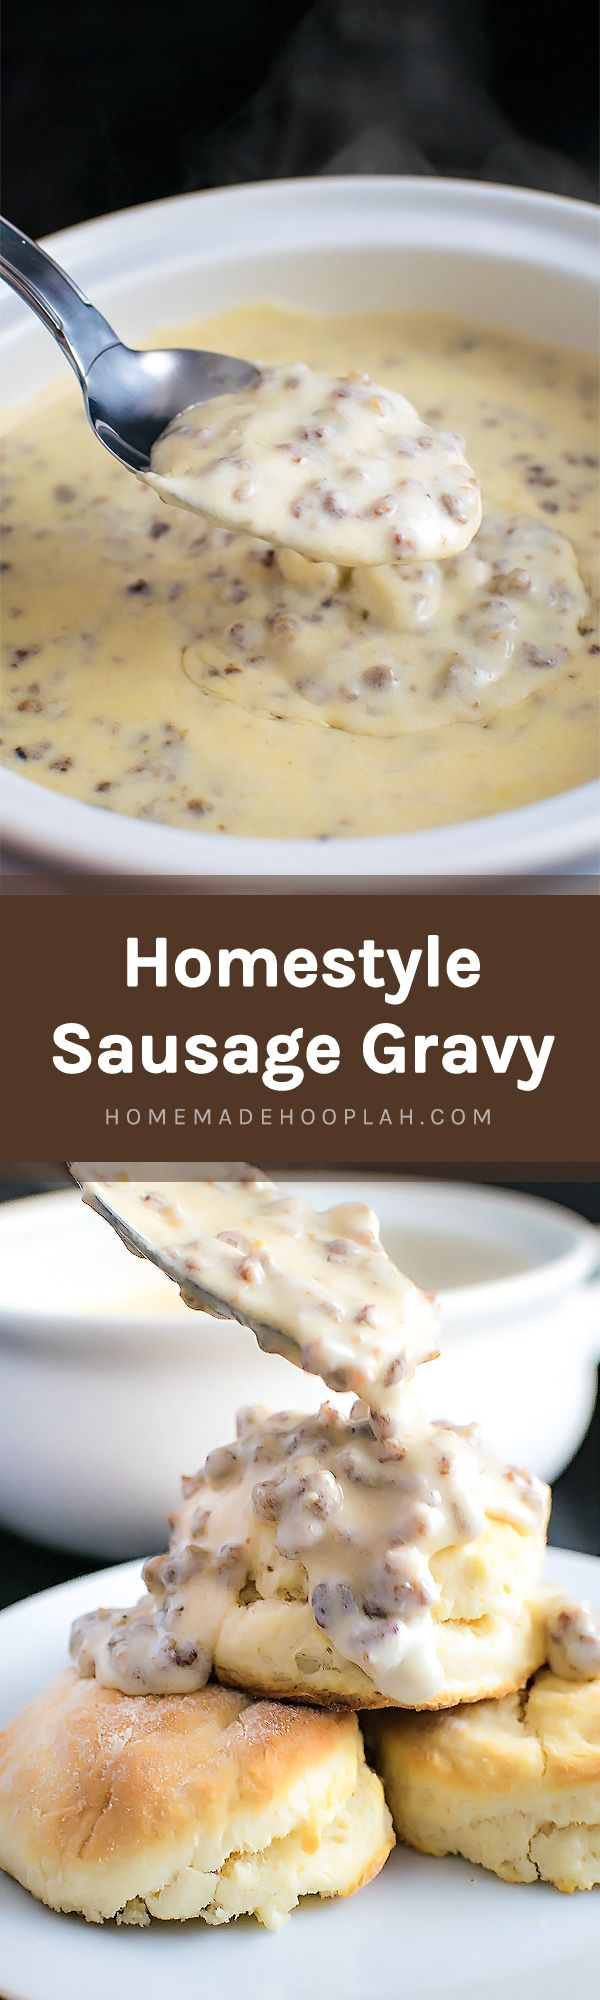 Homestyle Sausage Gravy! Get your comfort food fix with classic sausage gravy. Perfect for a lazy morning and ready in less than 30 minutes! | HomemadeHooplah.com